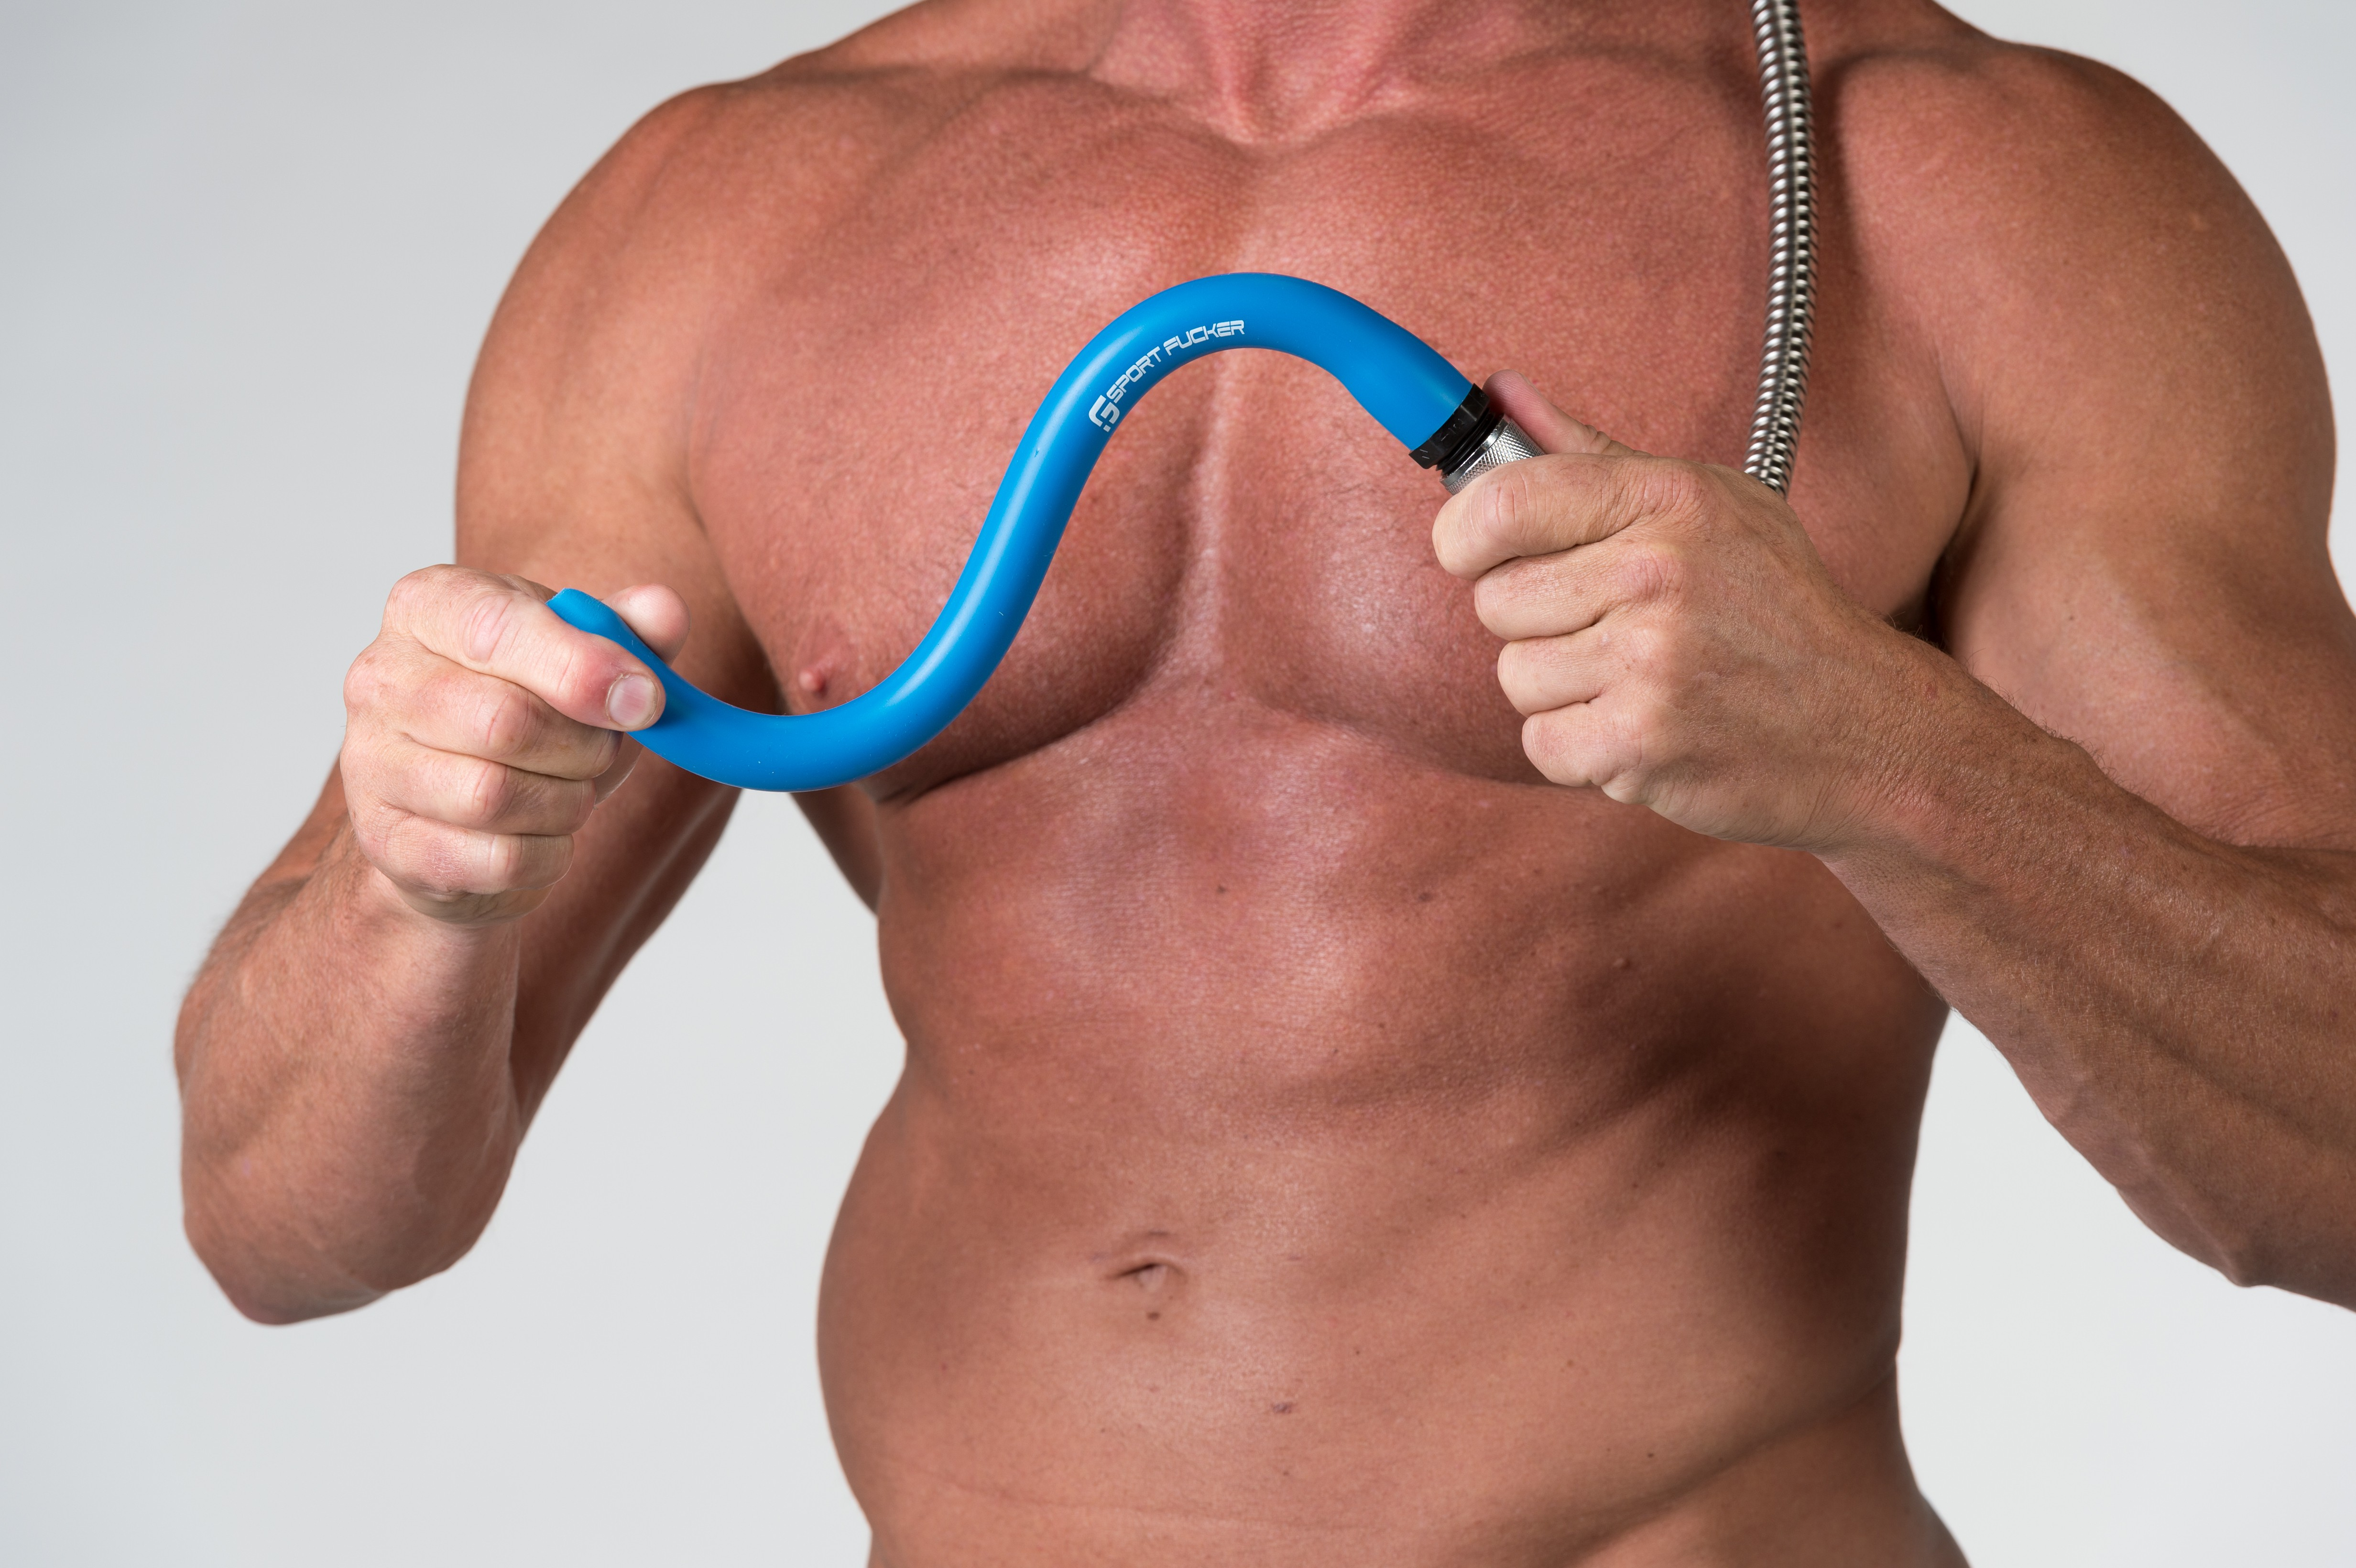 EMBOUT DOUCHE ANNALE LOCKER ROOM HOSE SILICONE By sportfucker